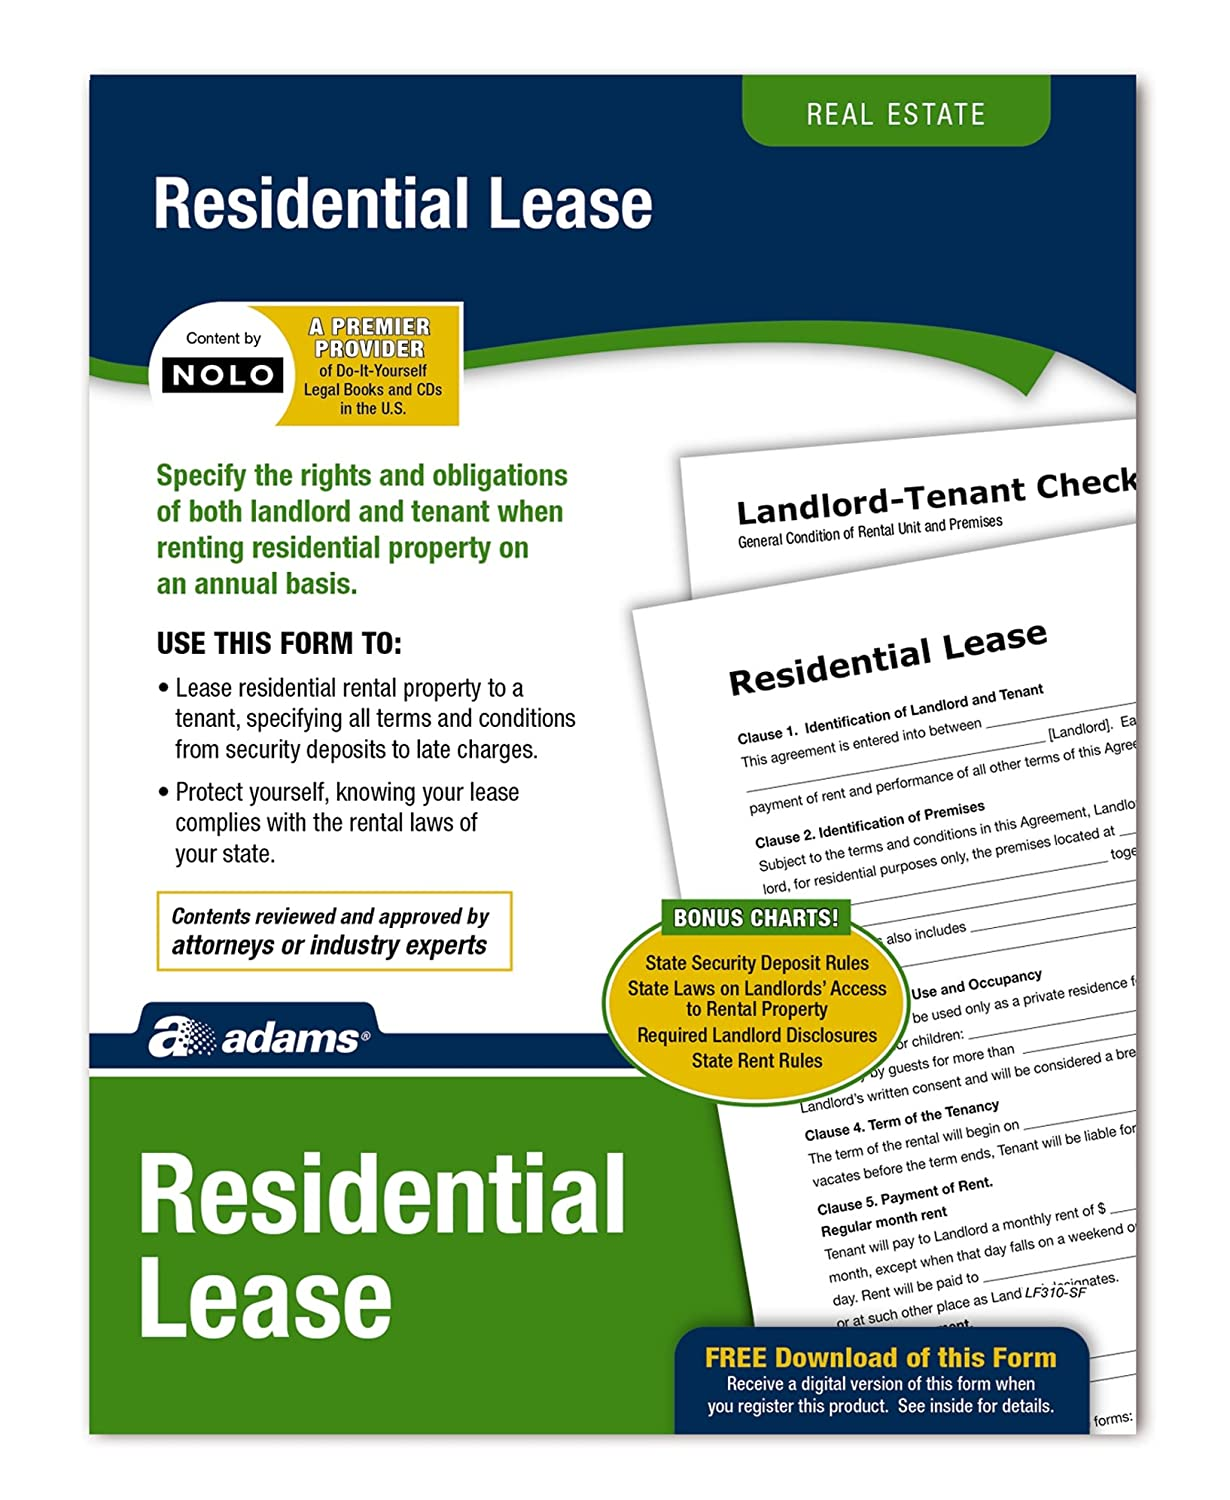 Adams Residential Lease Forms And Instructions Lf310